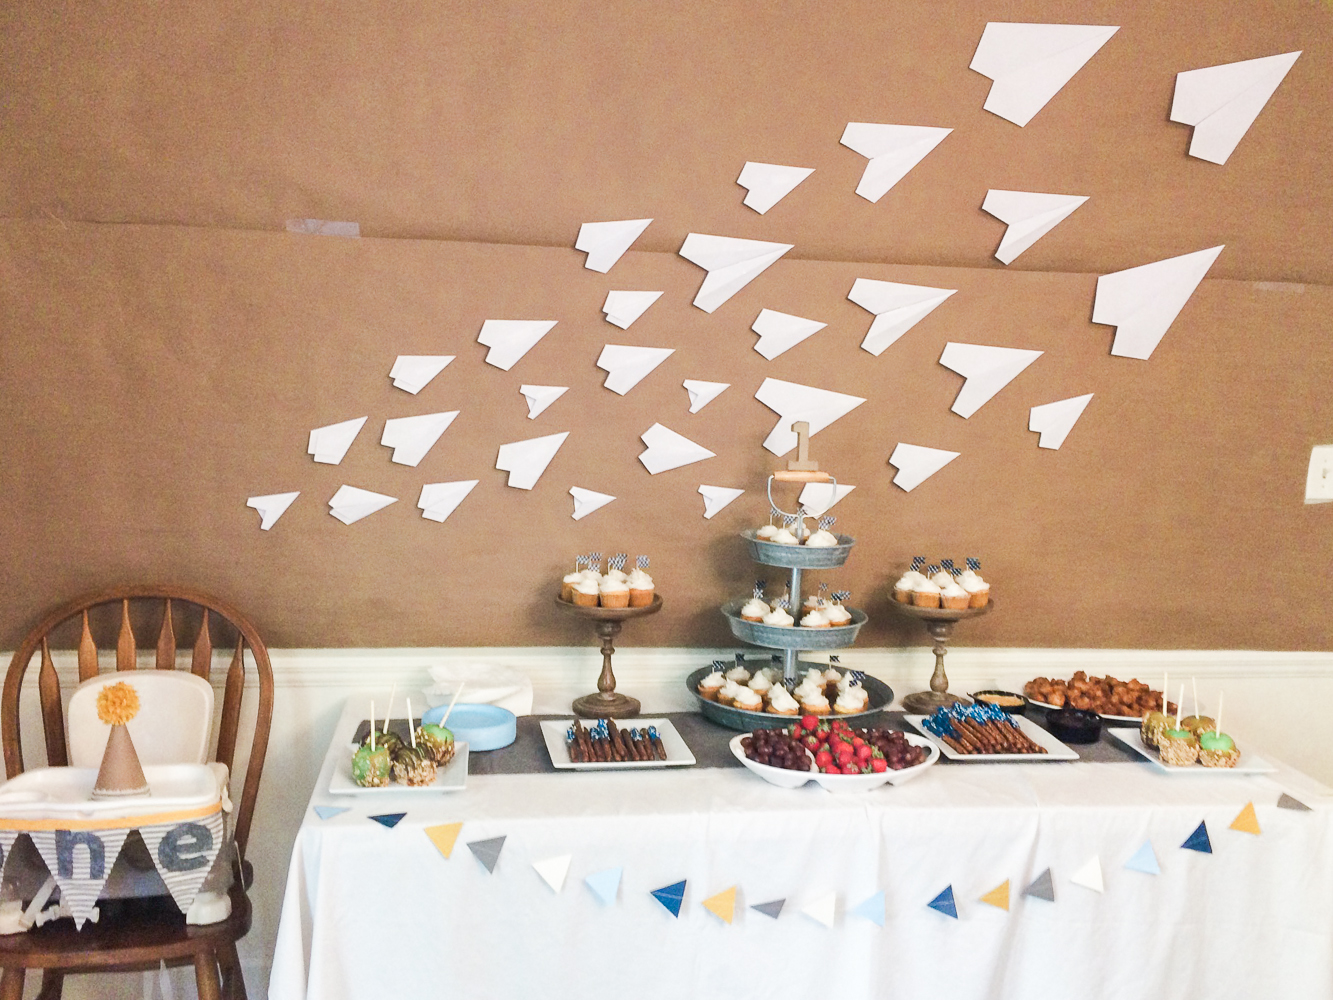 Rustic Paper Airplane Party | Rustic paper airplane party with all handmade party decorations and ticking stripe banner. FREE printable banner template!